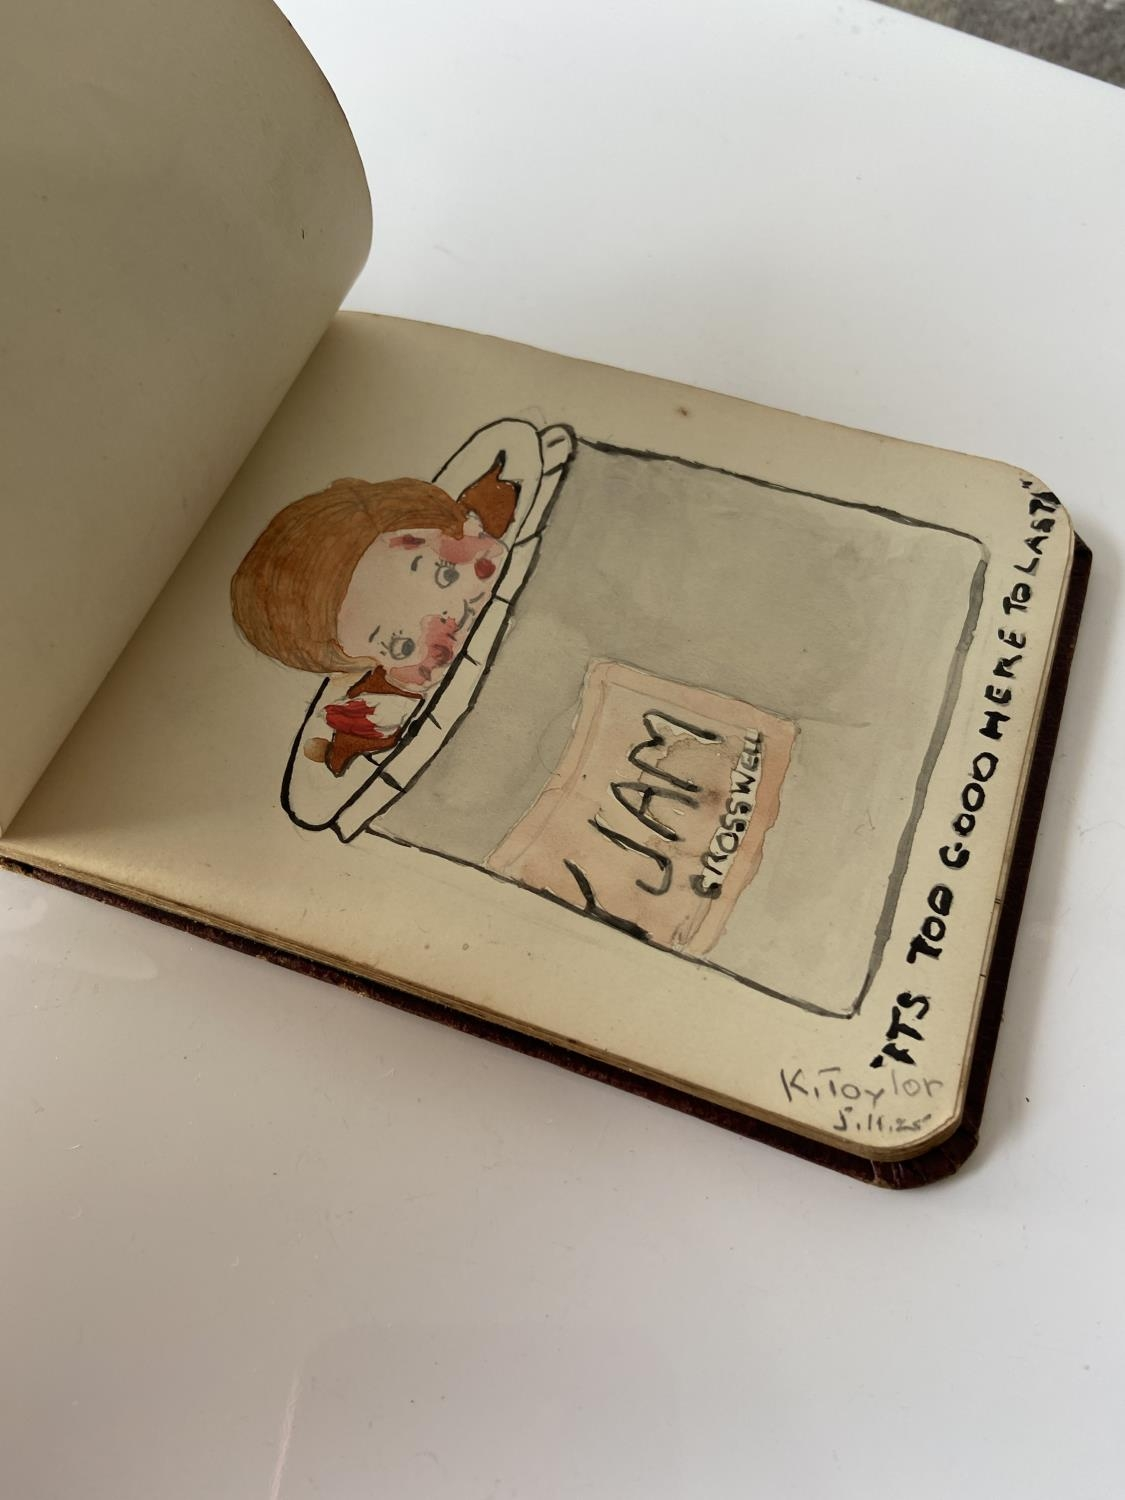 An old autograph album containing various poems, sayings & doodles - Image 10 of 18